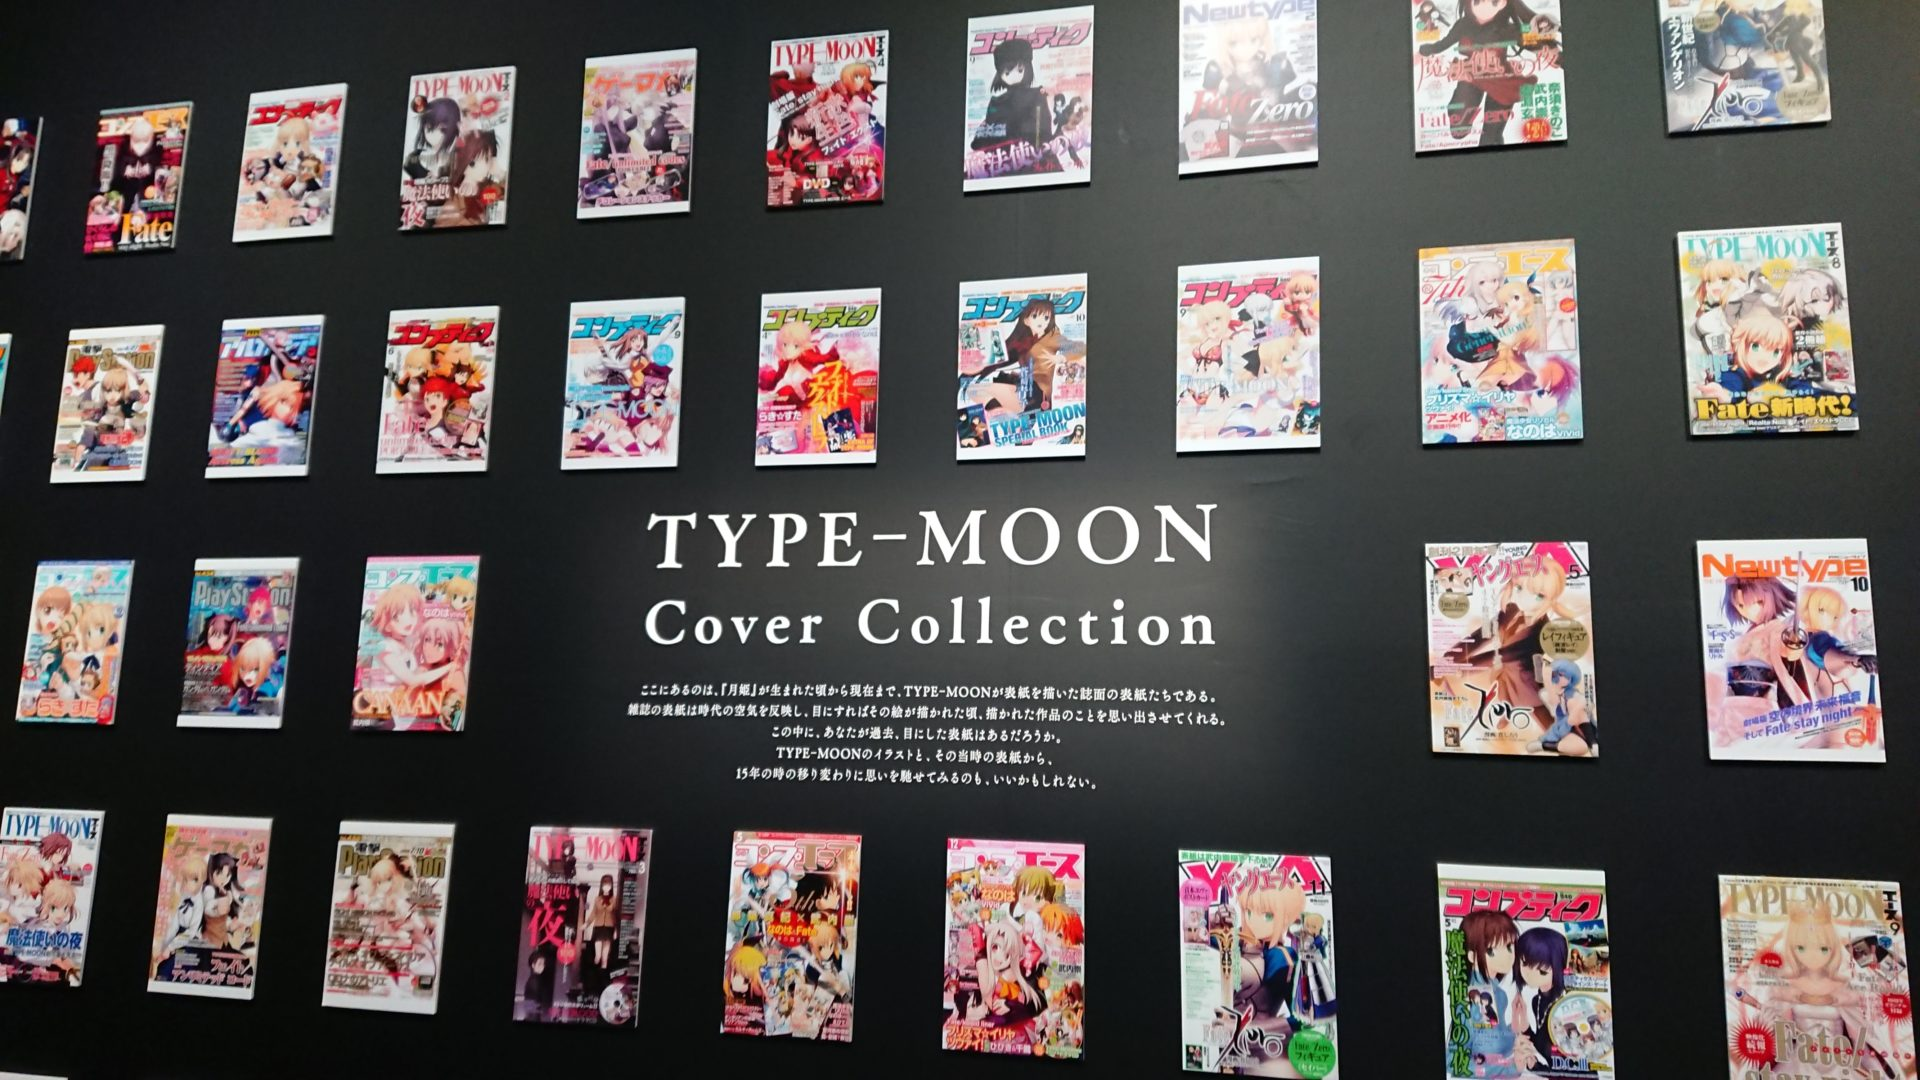 TYPE-MOON展,Fate